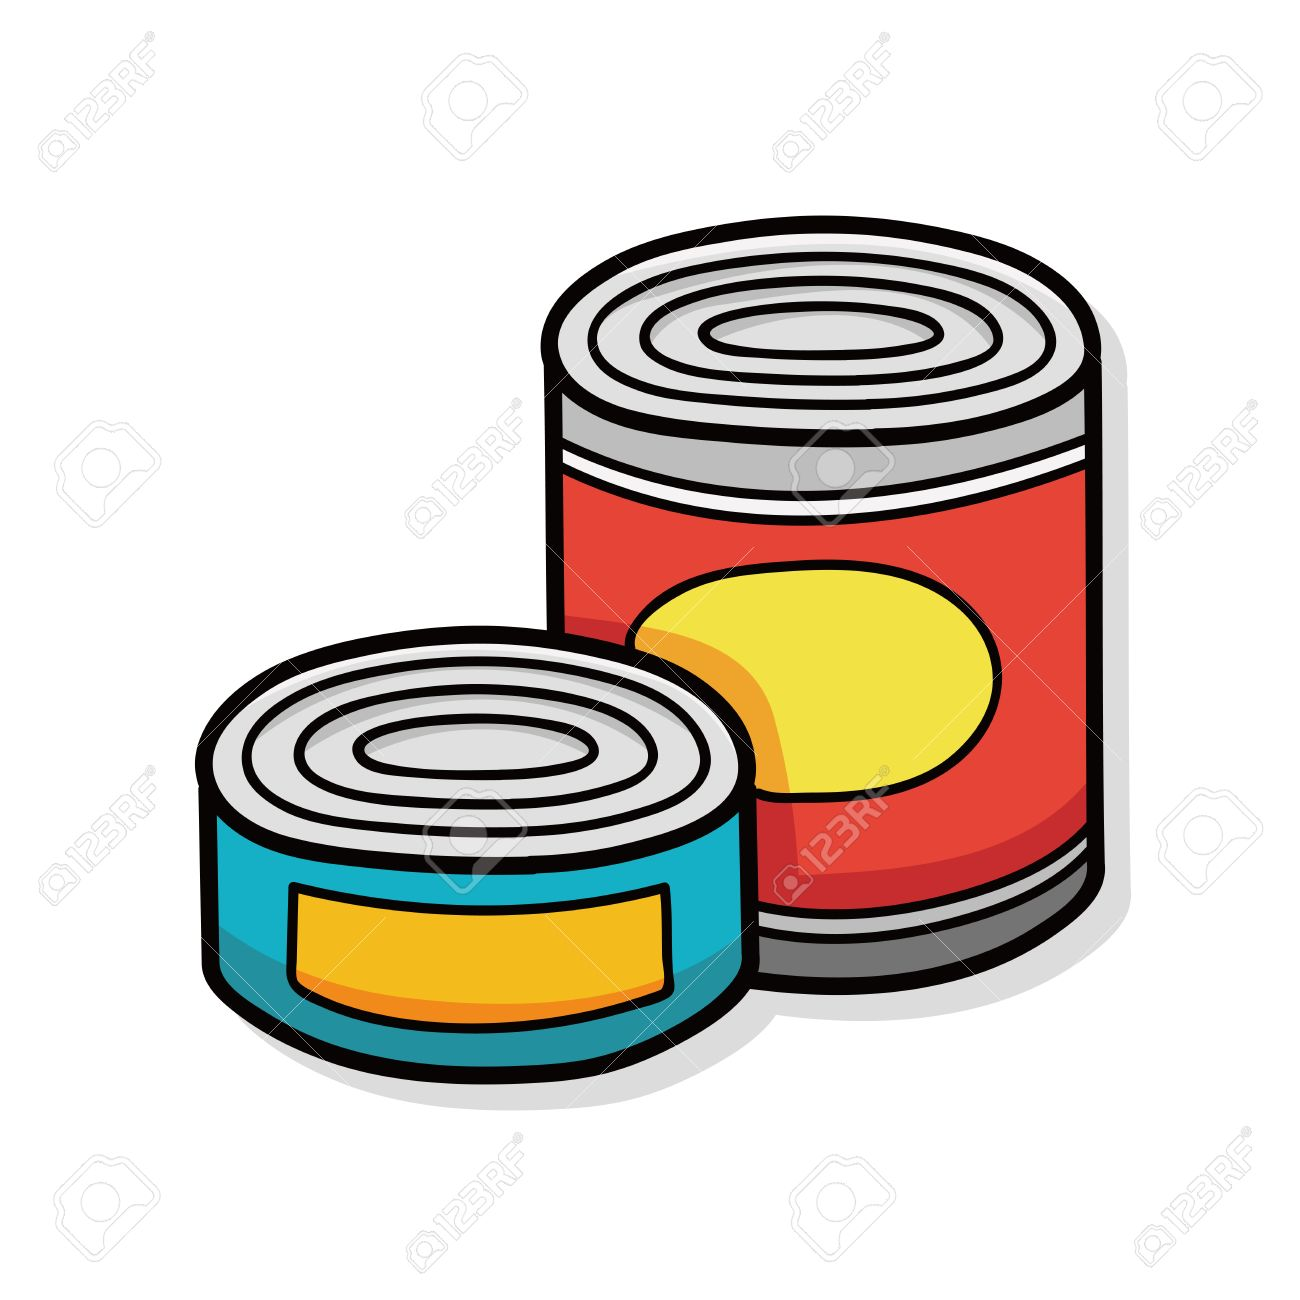 canned food doodle royalty free cliparts vectors and stock rh 123rf com free clipart canned food canned foods clipart graphics gifs